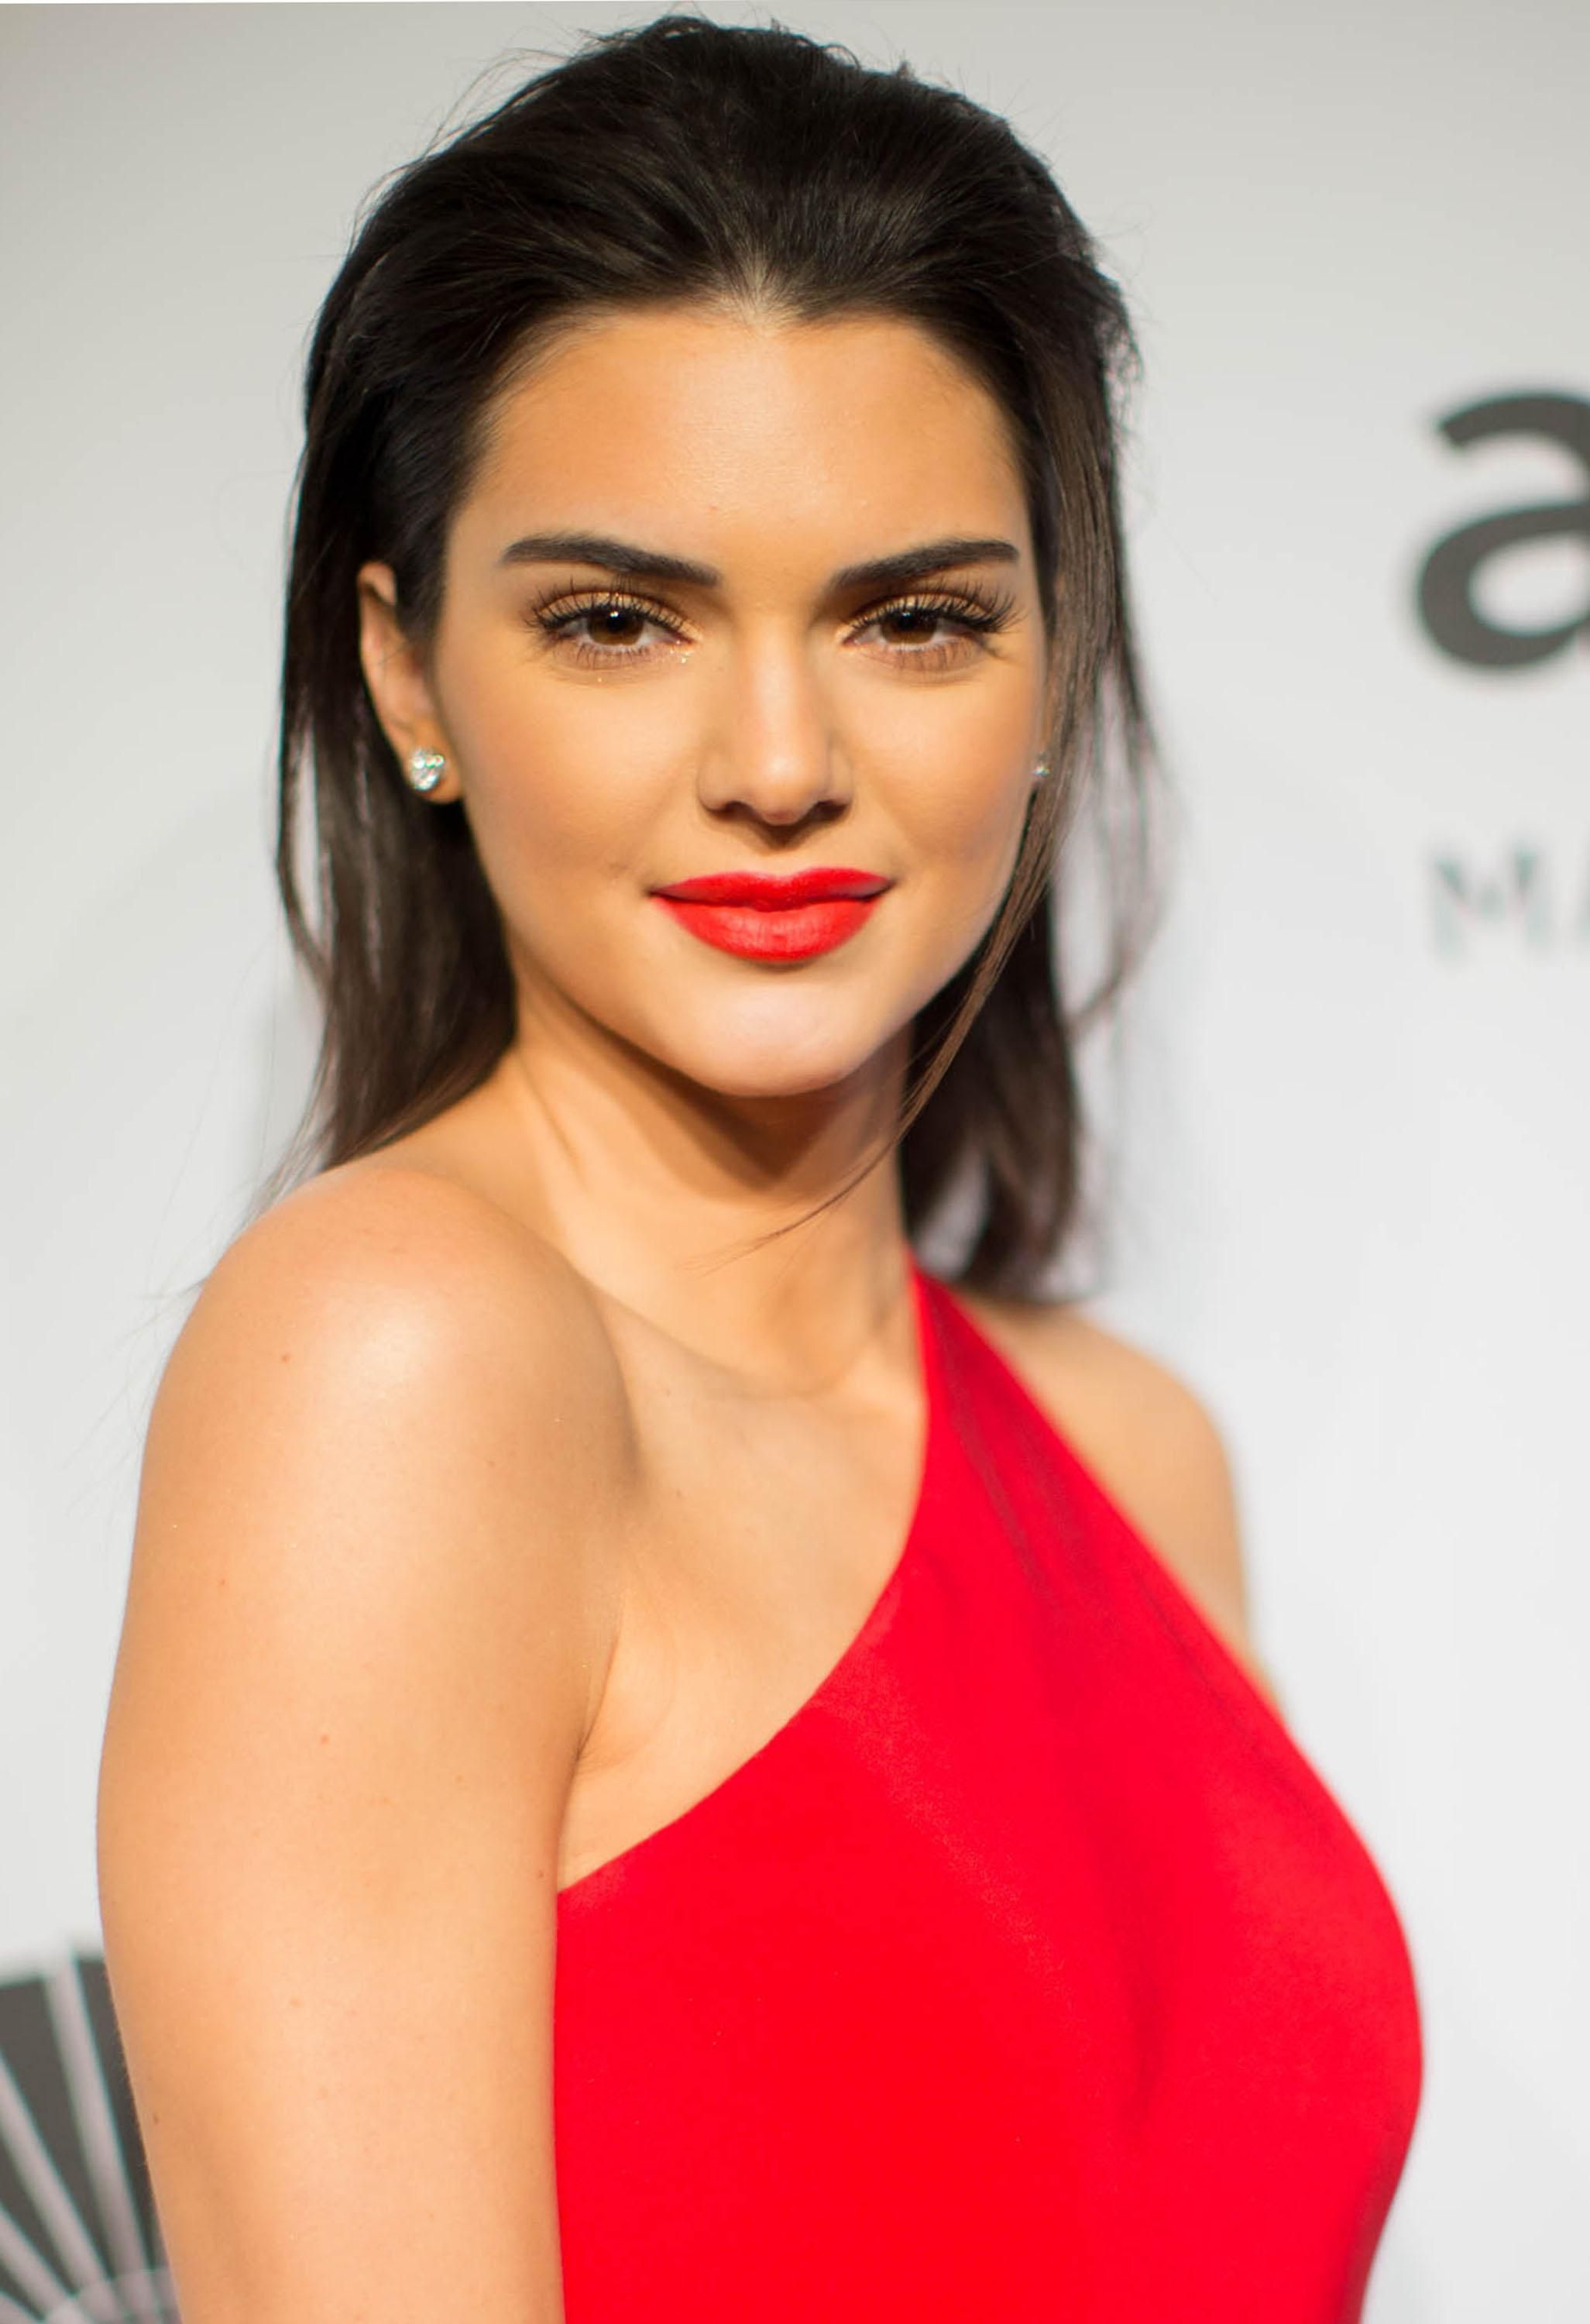 beauty ideas for prom courtesy of your favorite supermodels